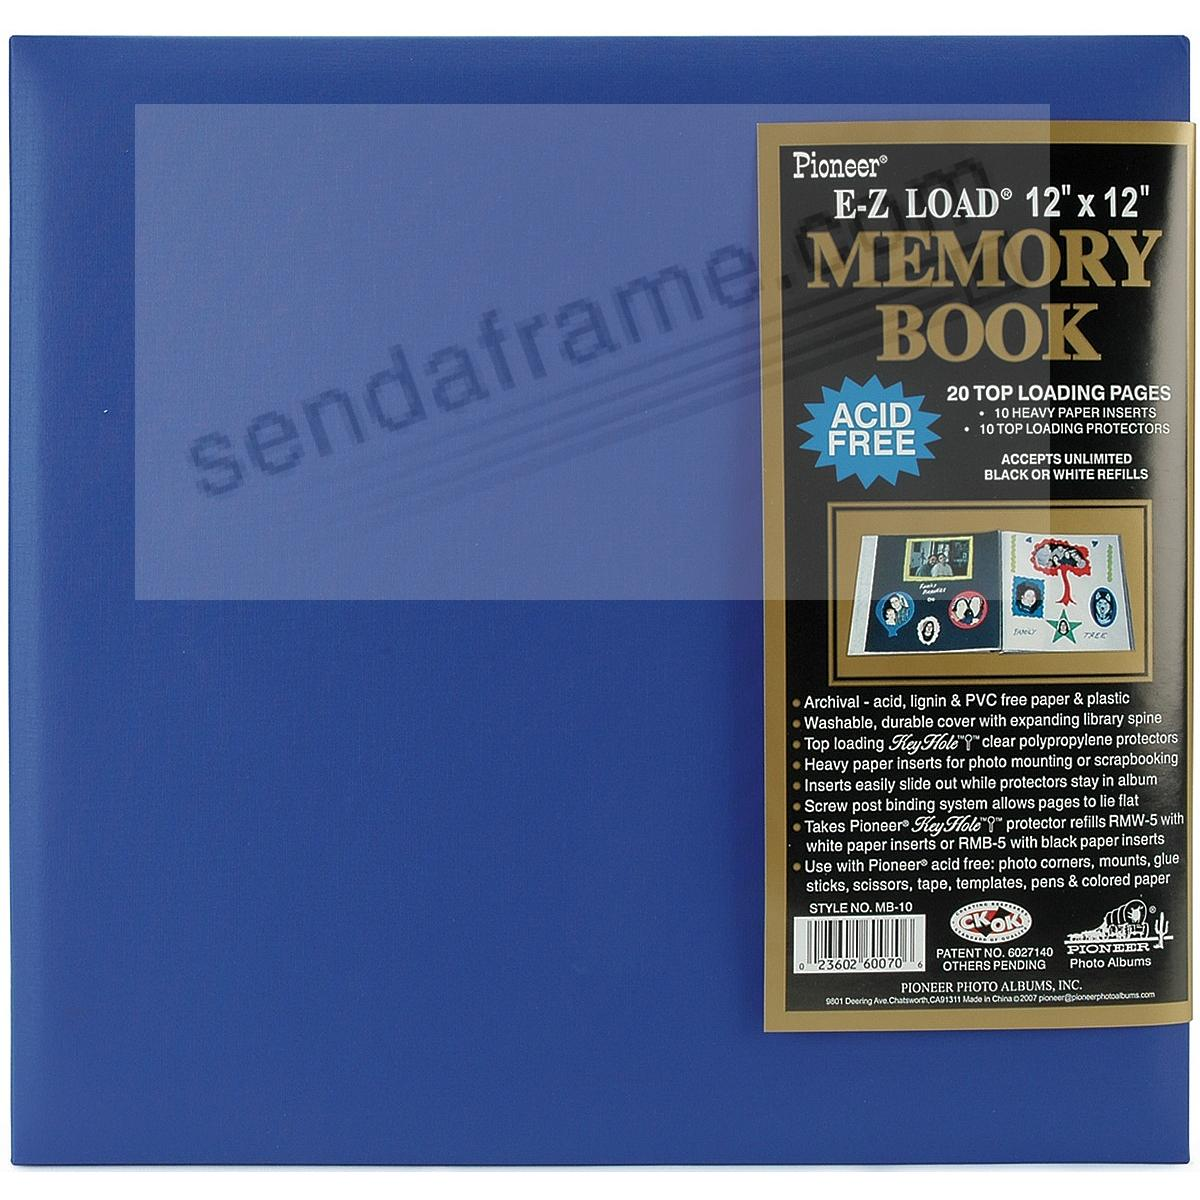 Sea-Blue 12x12 Leatherette Scrapbook album by Pioneer®